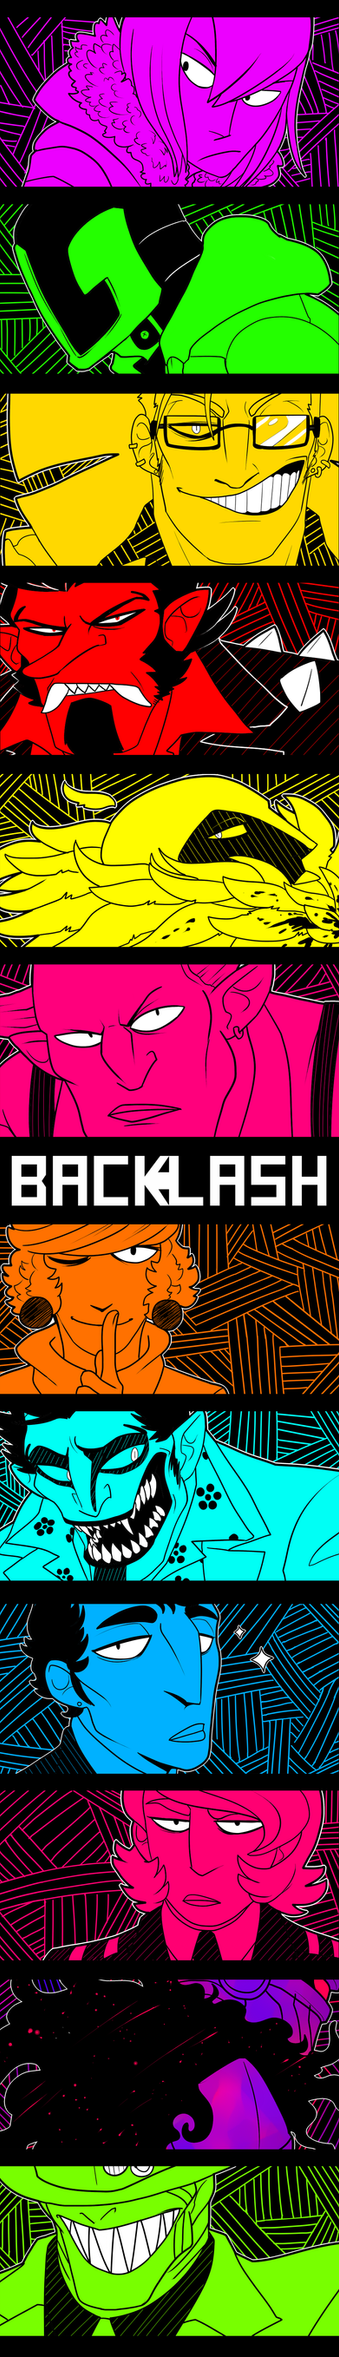 BACKLASH -- EYECATCH by BITEGHOST